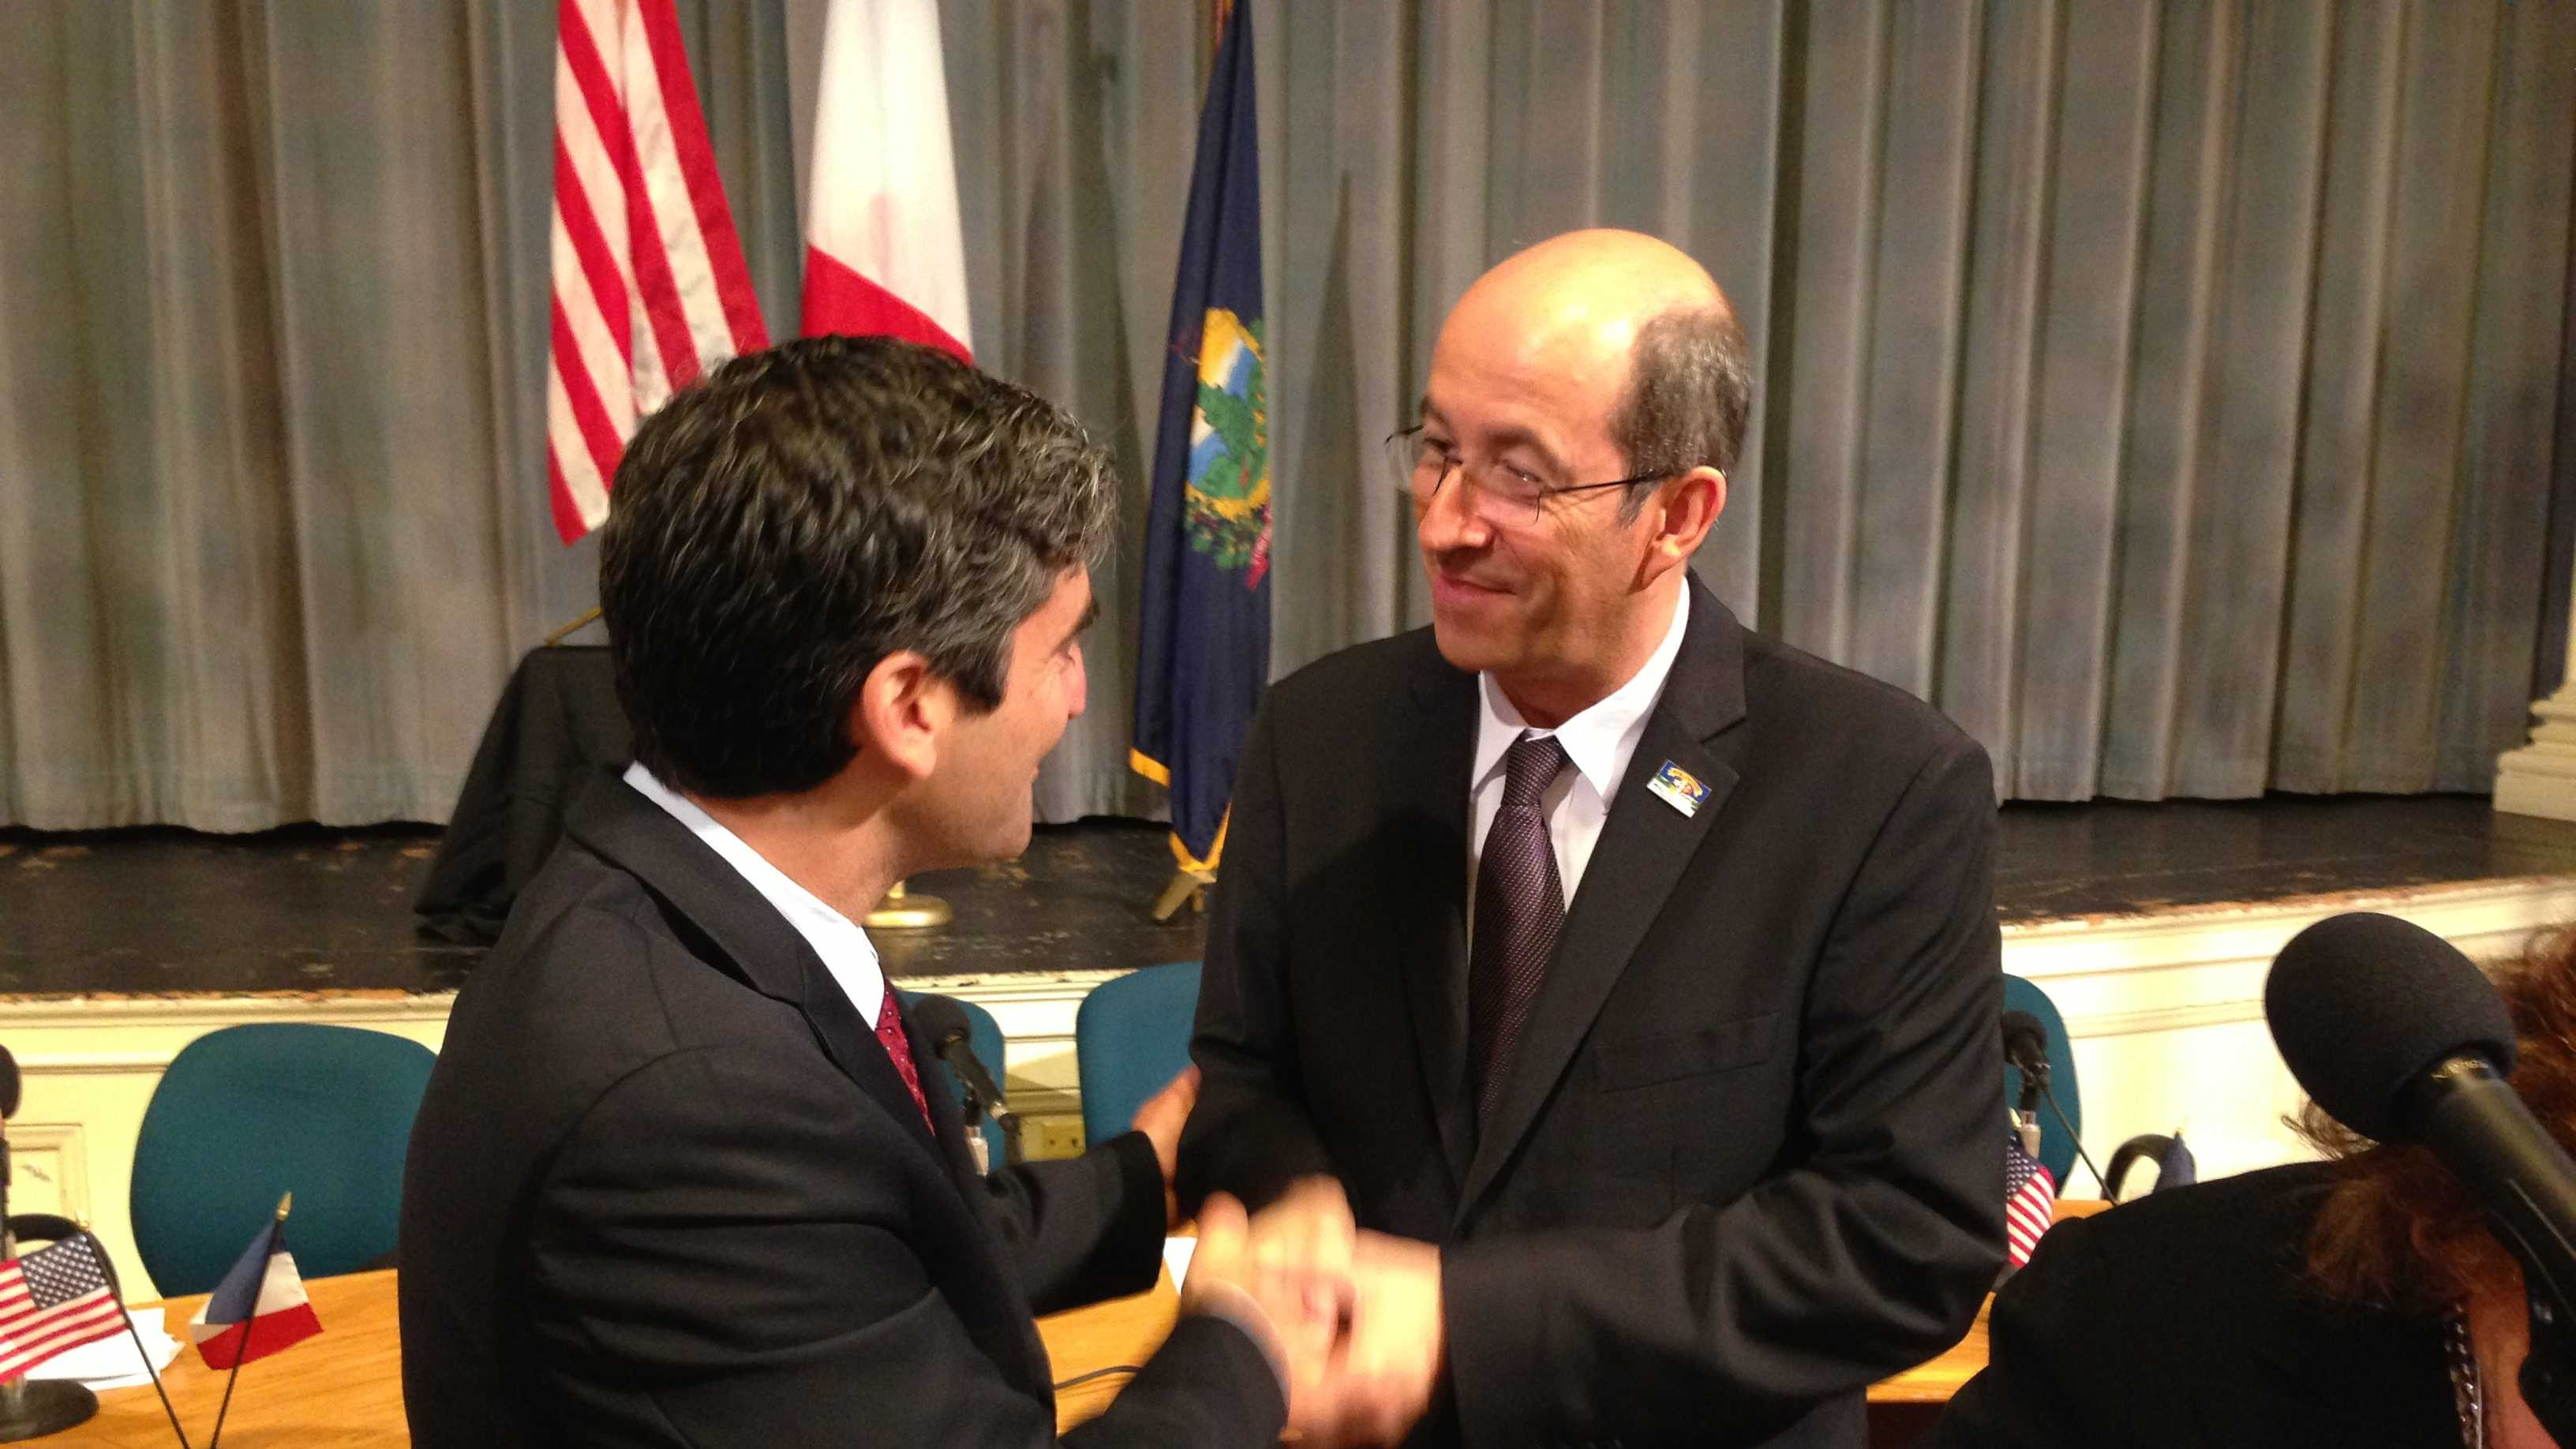 Burlington Mayor Miro Weinberger (L) shakes hands with Mayor Michel Lamarre of Honfleur, Normandy, France after signing a sister-city agreement.